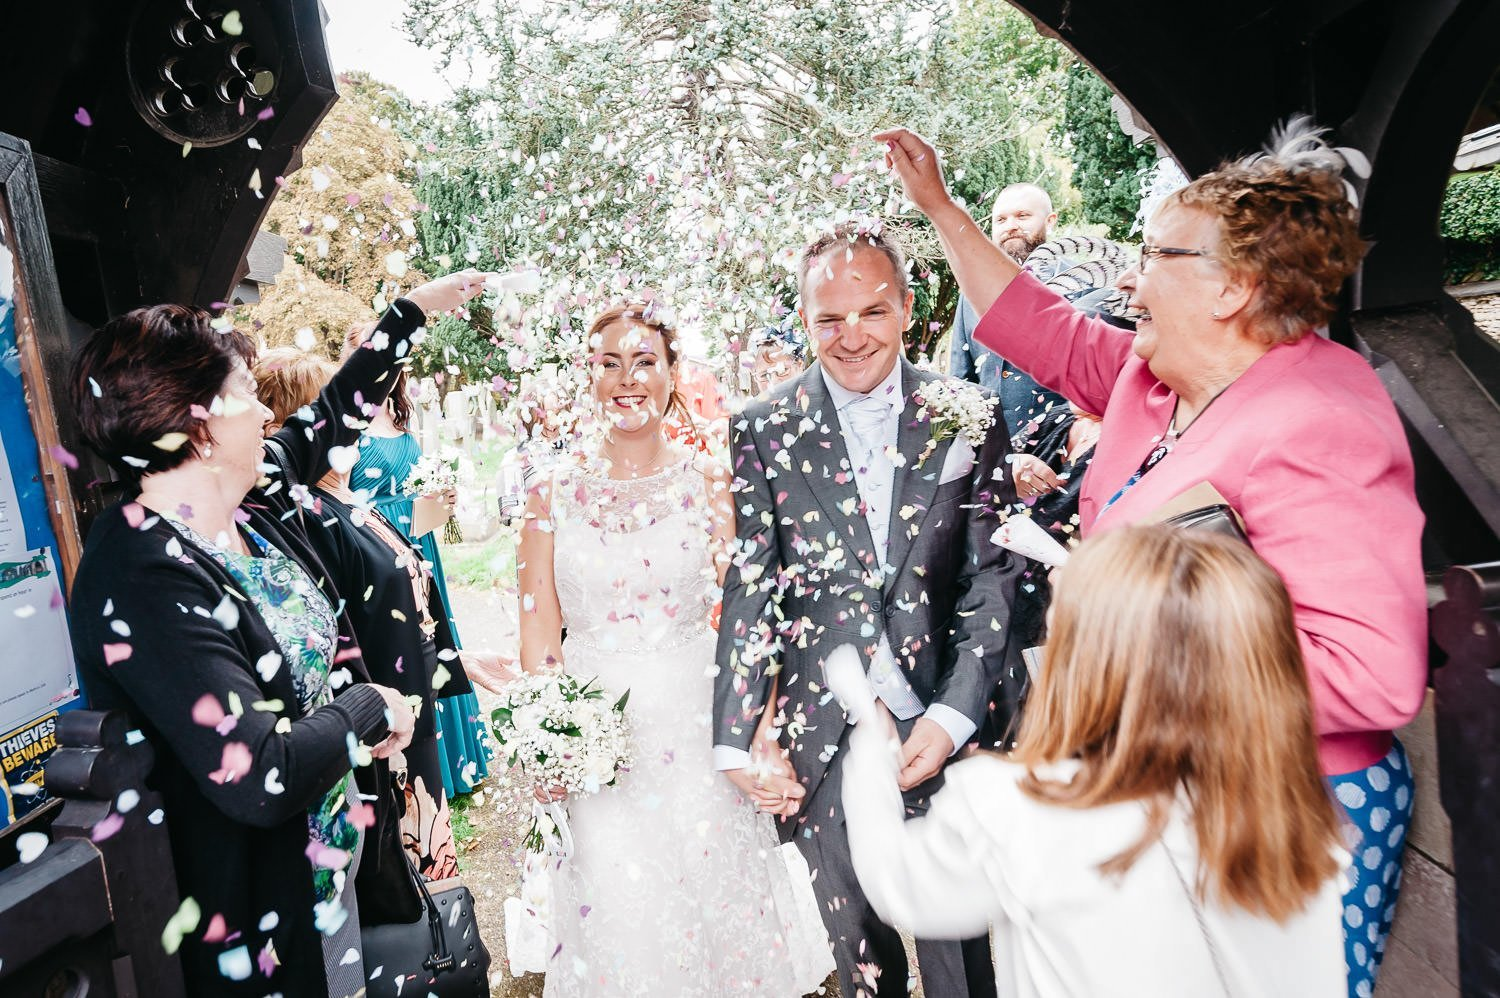 confetti thrown at bride and groom